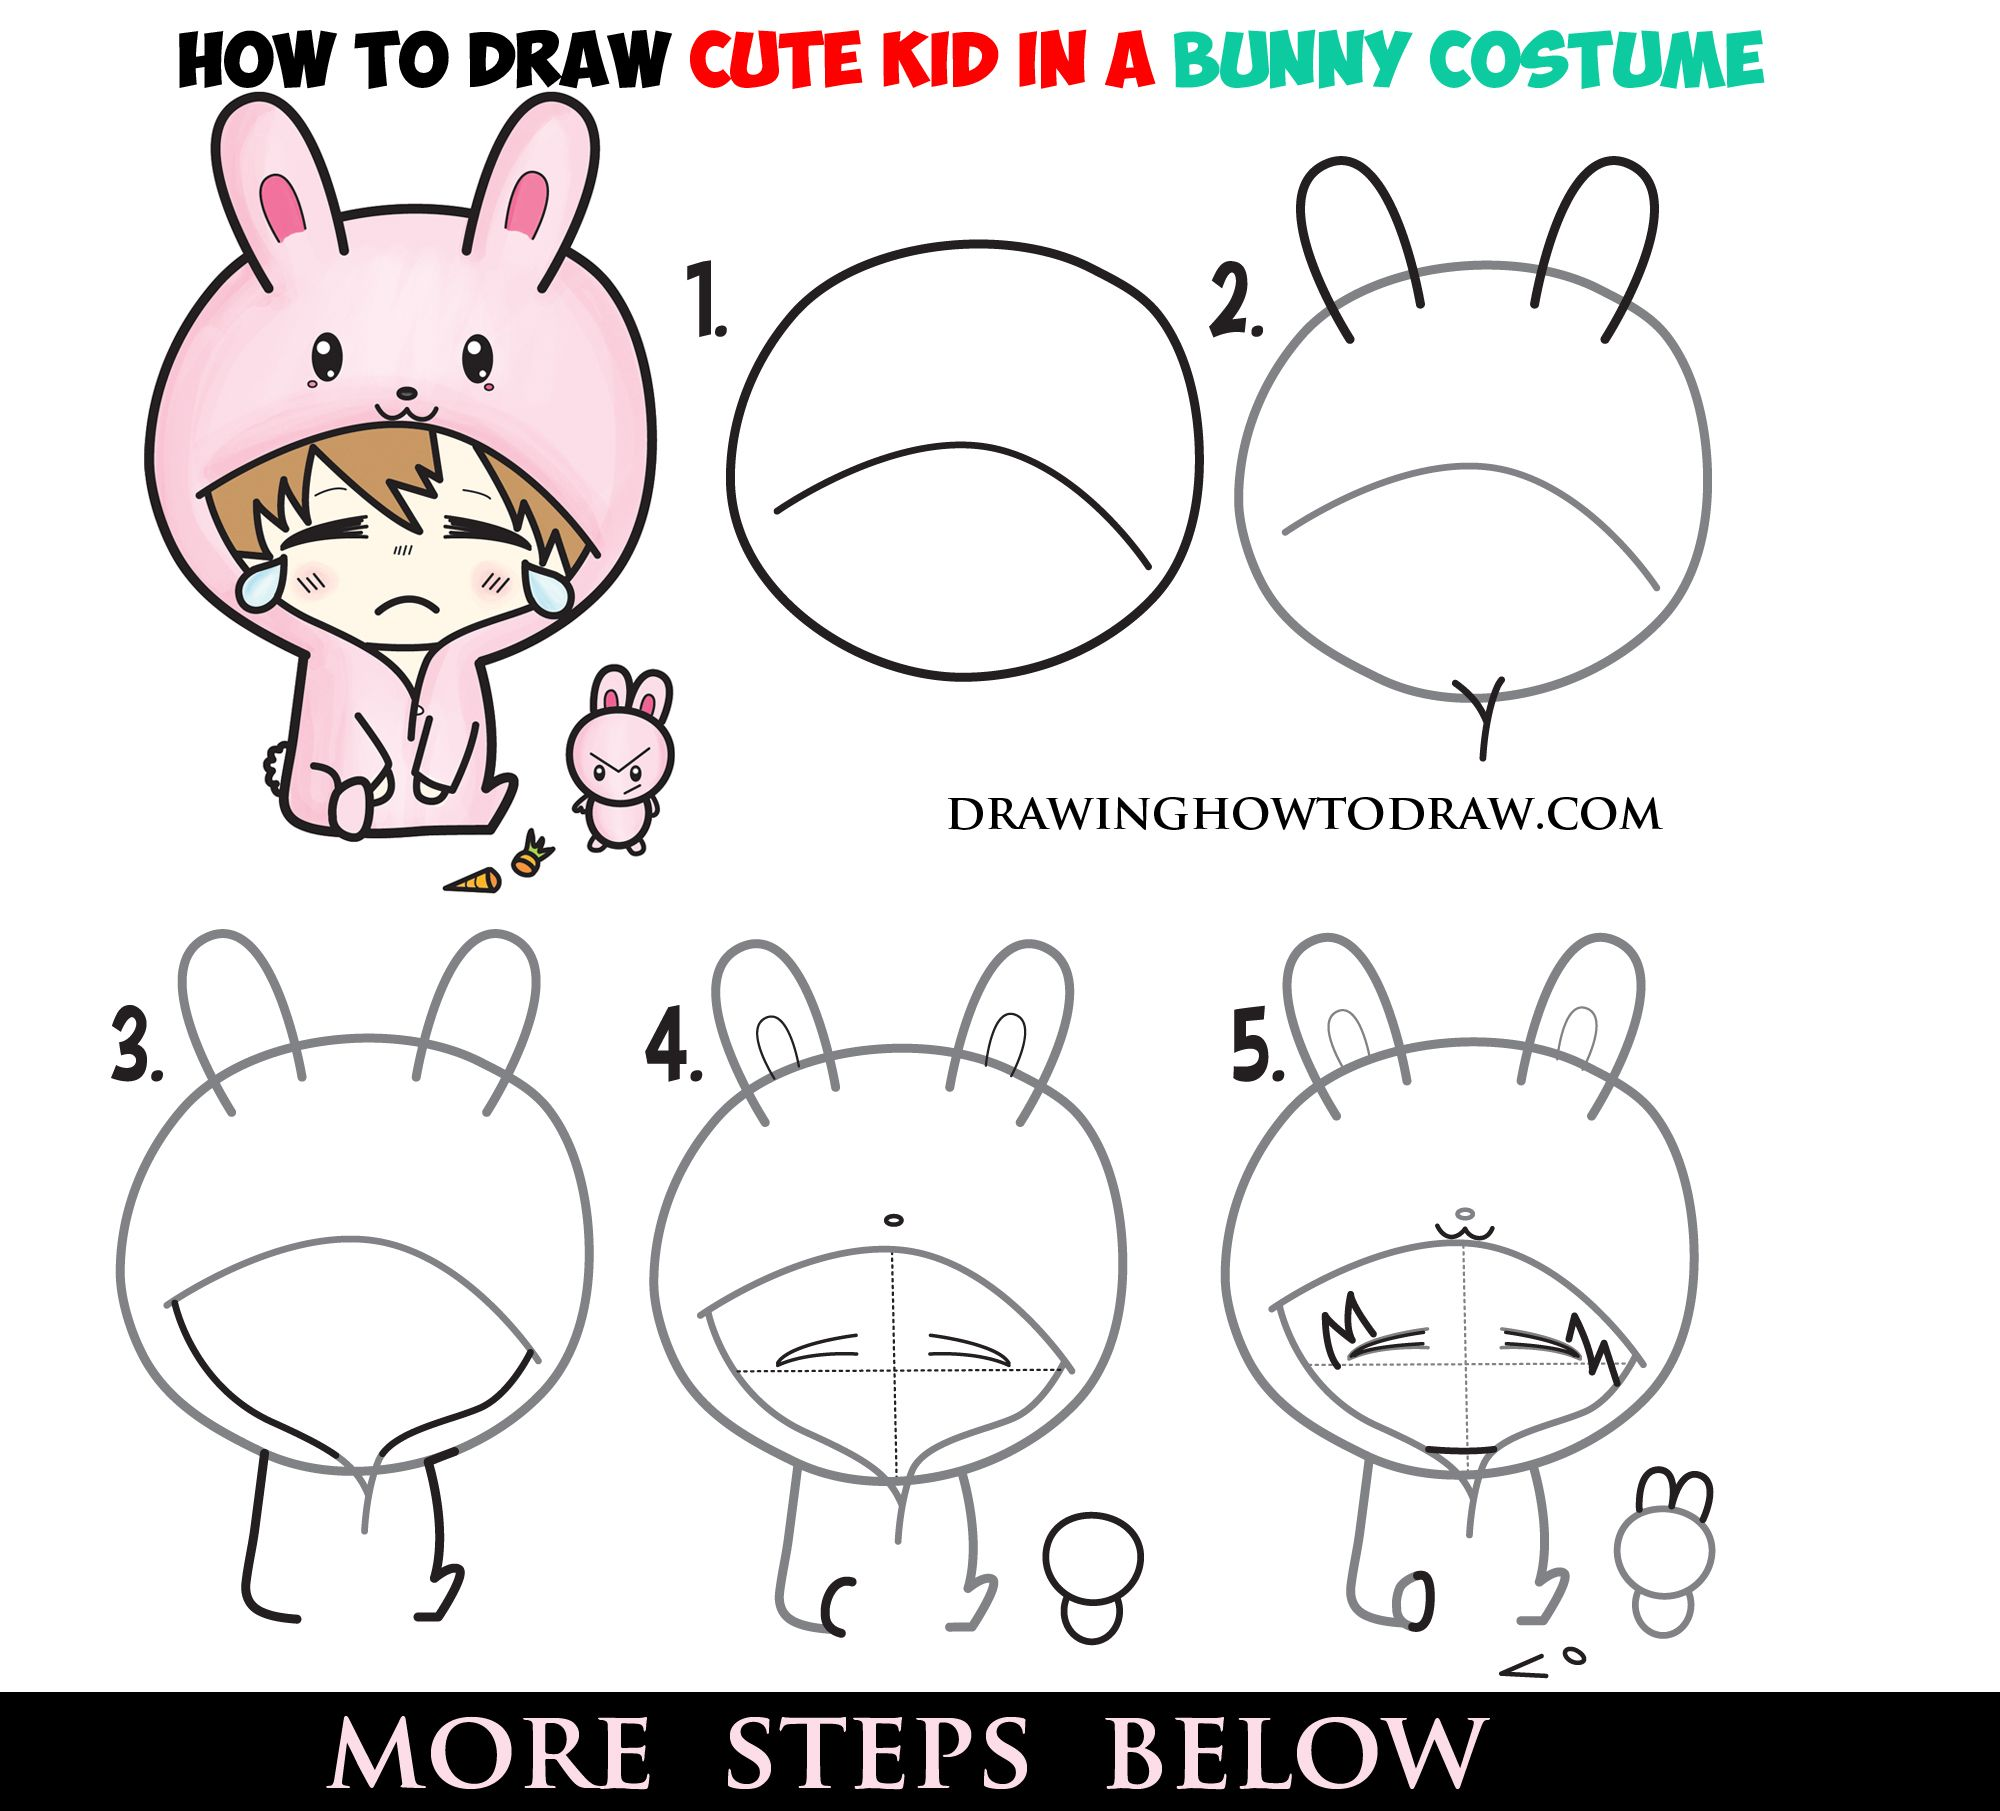 How To Draw A Cute Chibi Character In Bunny Rabbit Onesie Pajamas Costume Easy Steps Drawing For Kids How To Draw Step By Step Drawing Tutorials Funny Drawings Cute Chibi Drawings